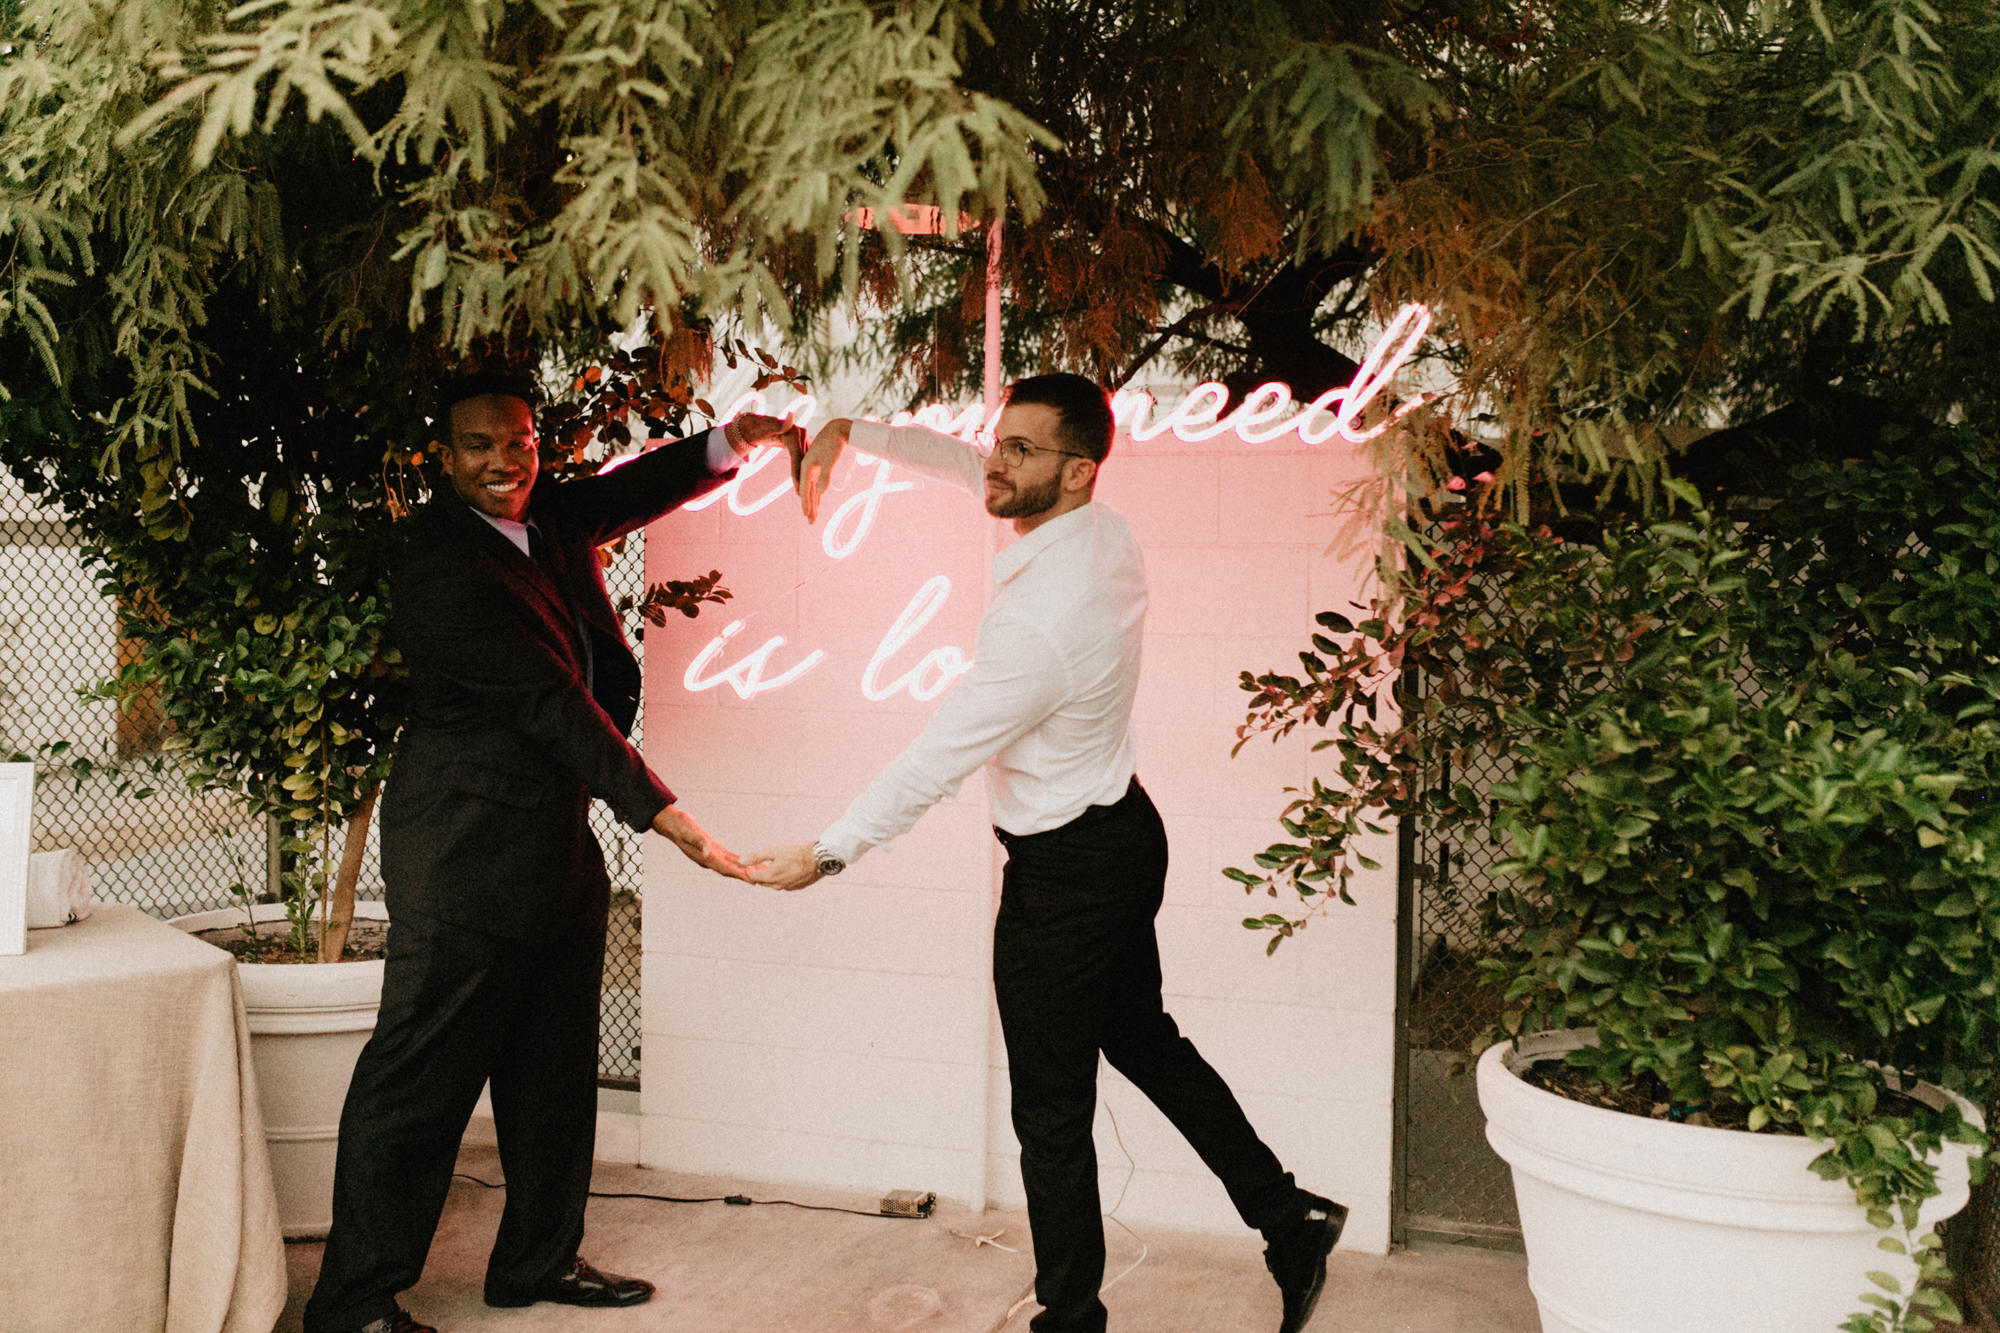 ace_hotel_palm_springs_wedding-100.jpg